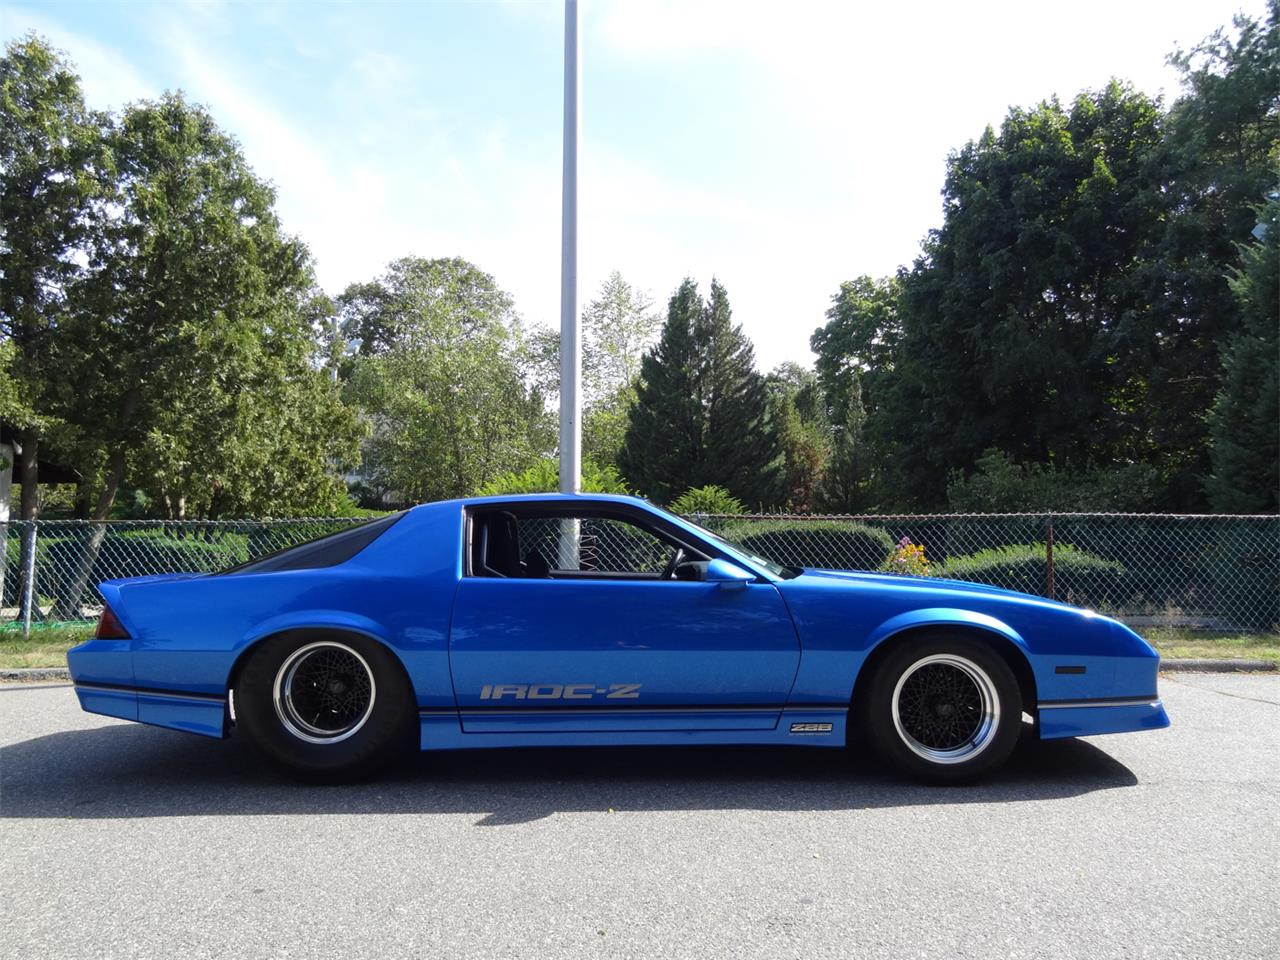 Large Picture of '83 Camaro IROC Z28 - $30,000.00 Offered by a Private Seller - QUEA